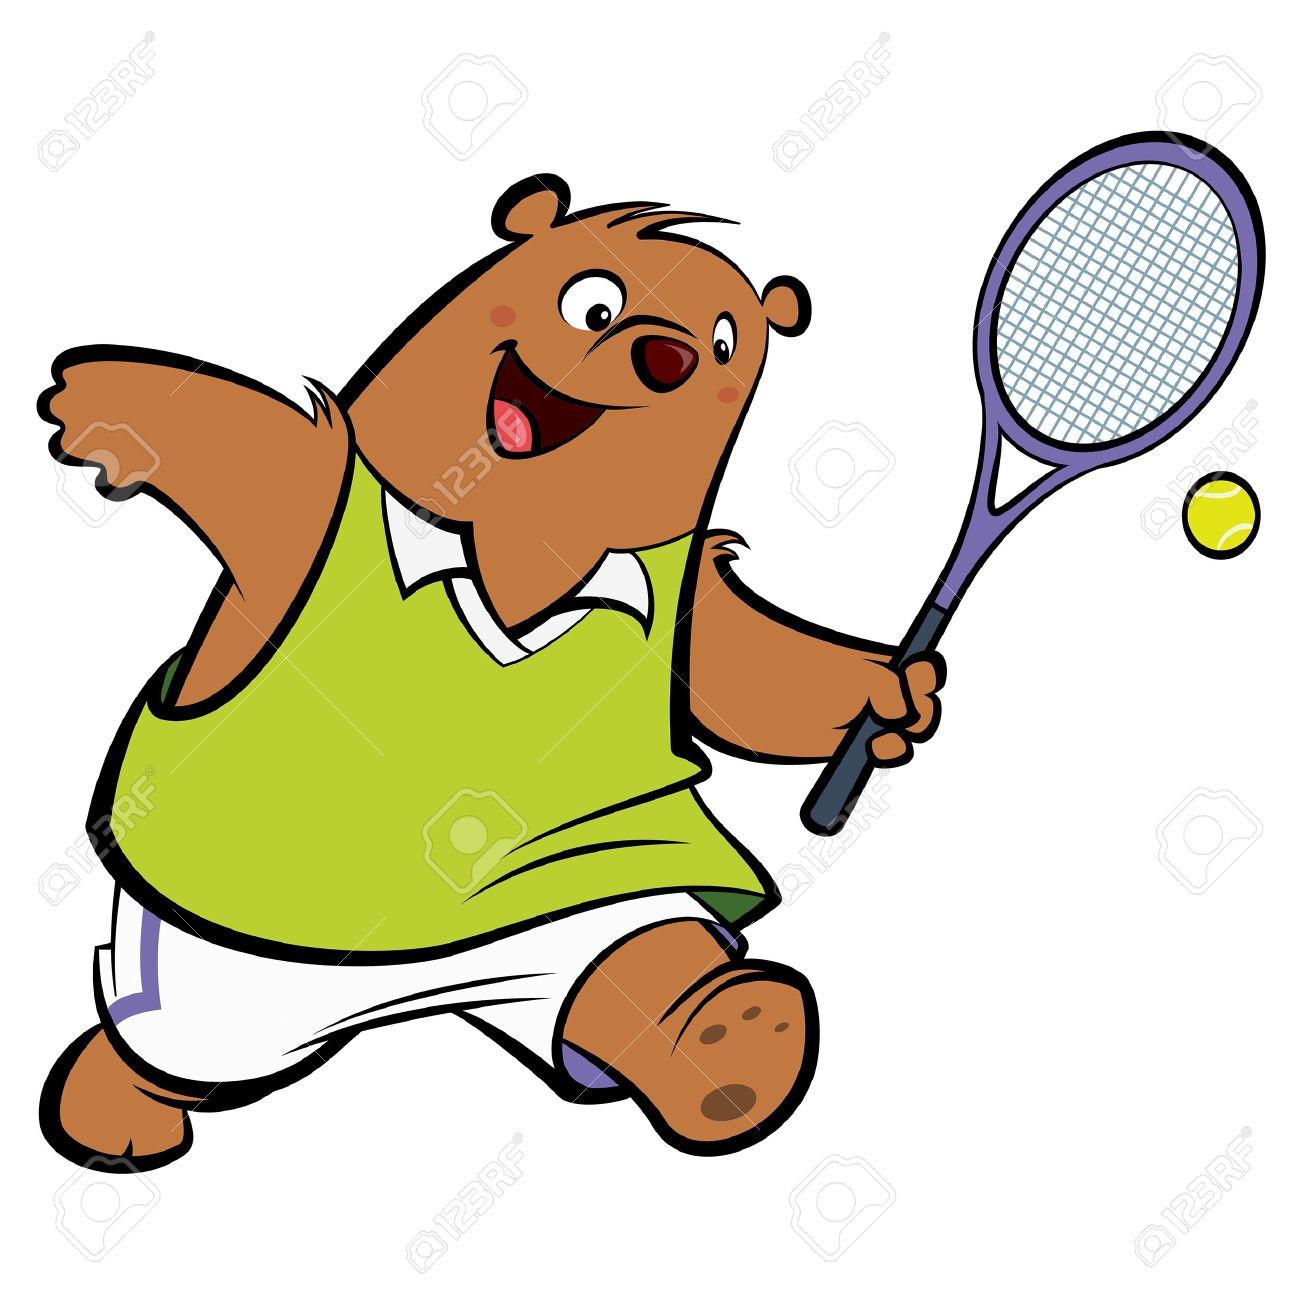 Tennis ball mascot stock photos tennis ball mascot stock photography - Racket Mascot Cartoon Bear With Athletic Suit Playing Tennis Wearing Sport Clothes Stock Photo